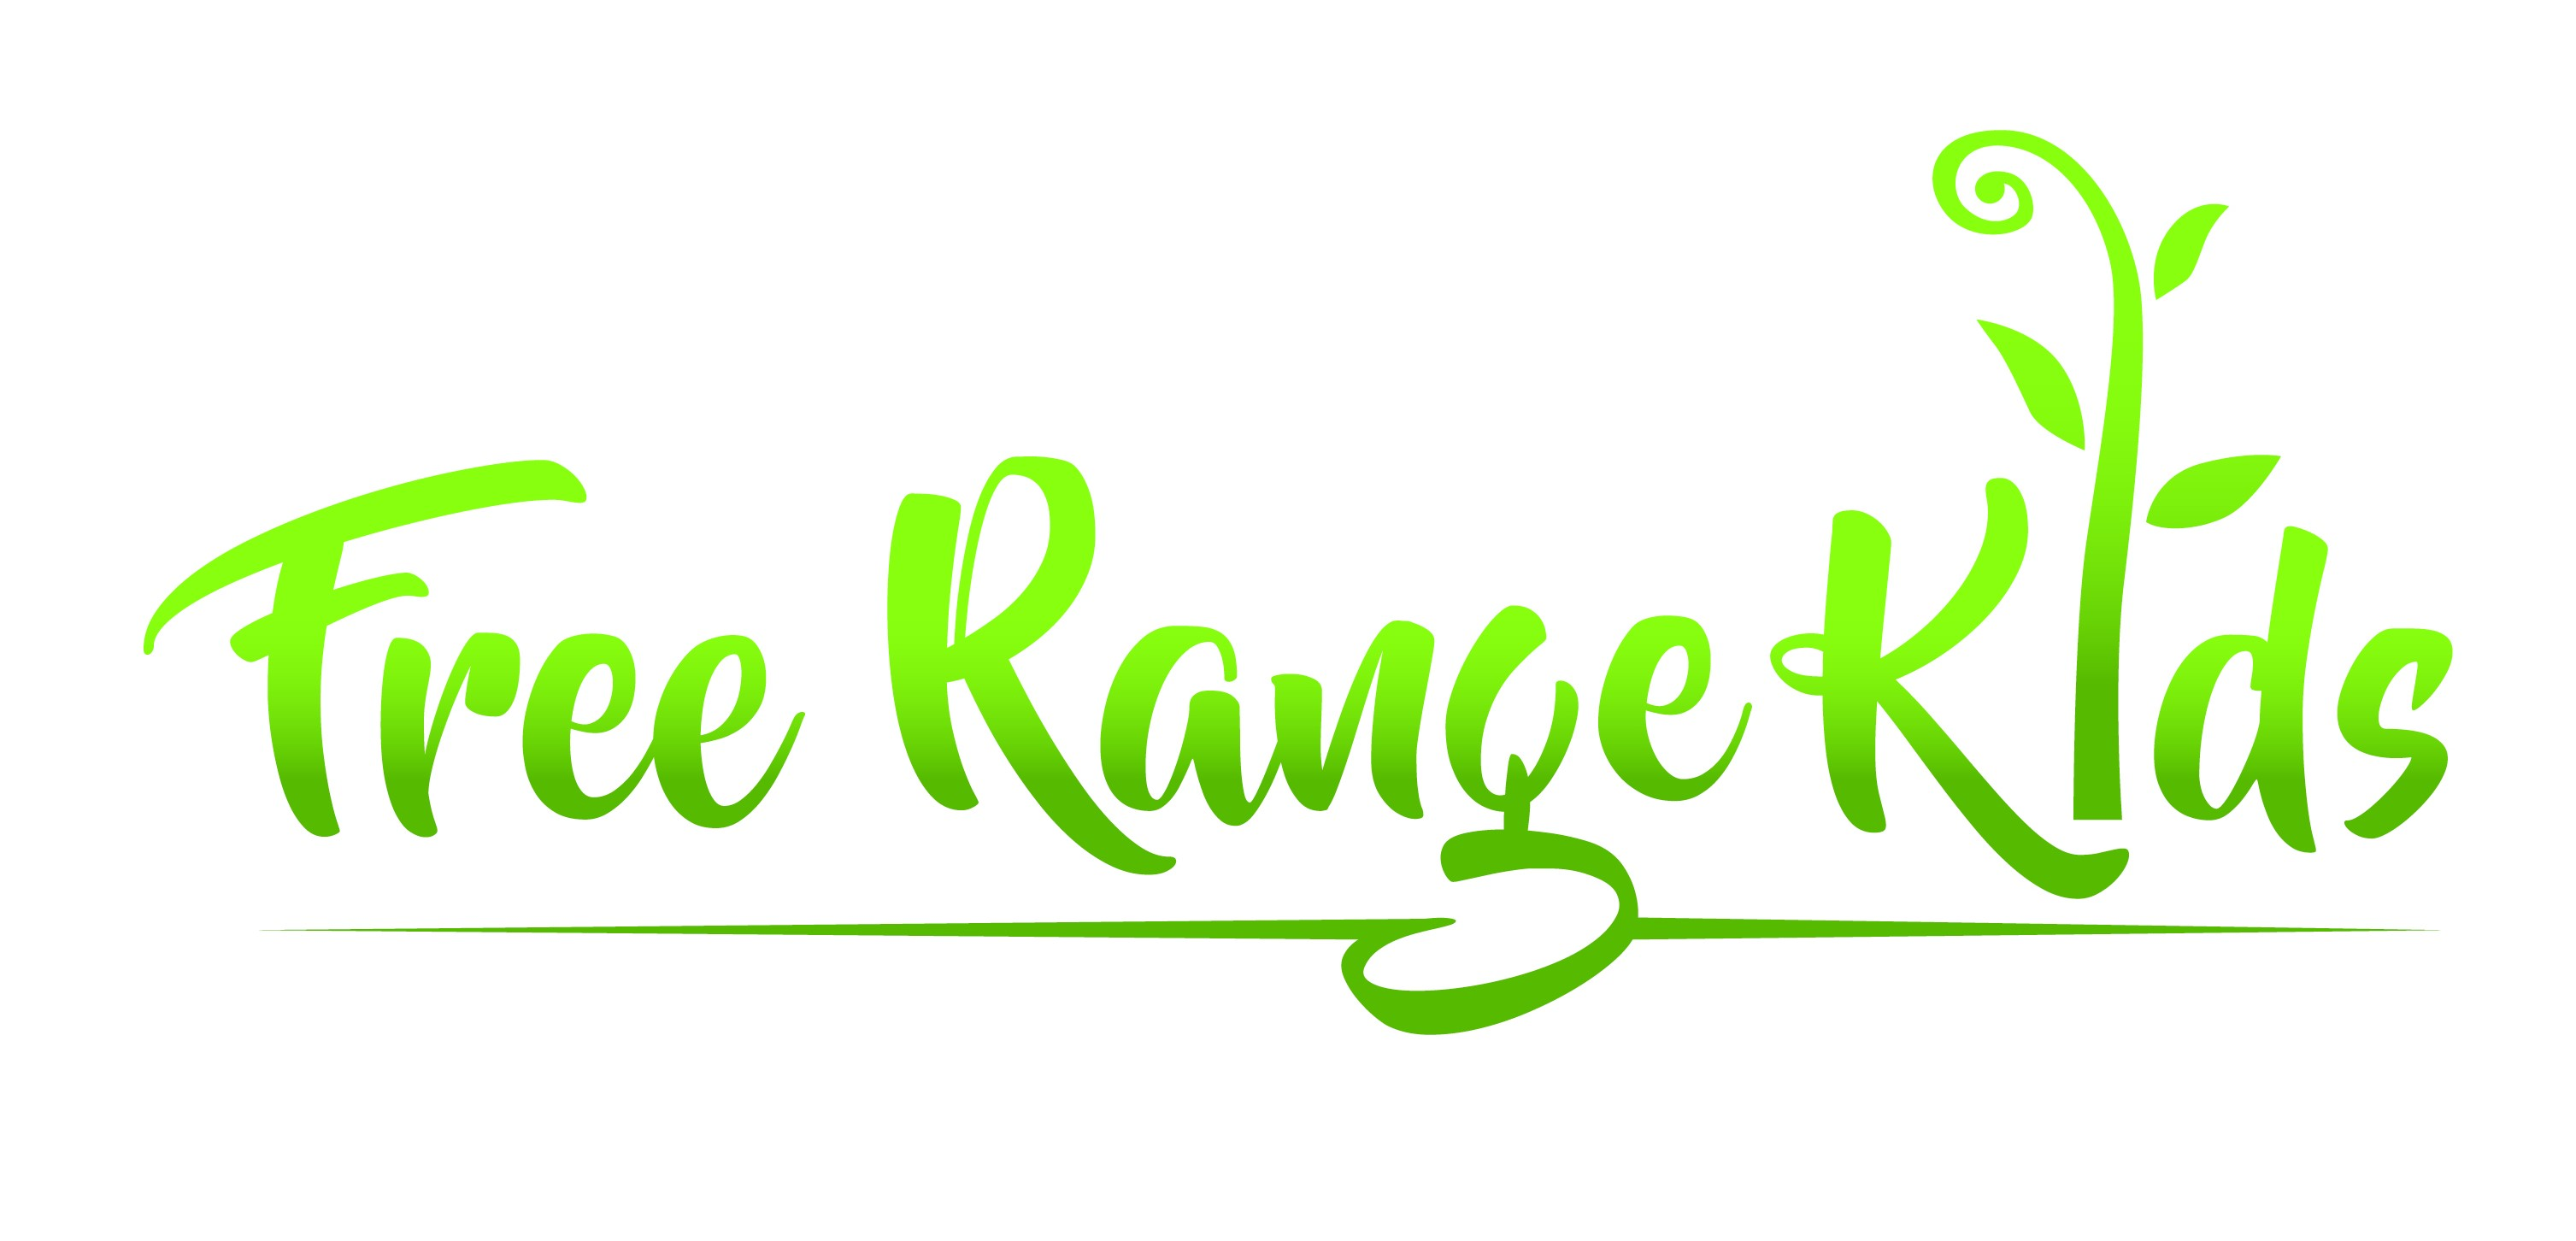 Free Range Kids - Delicious pre made meals for kids